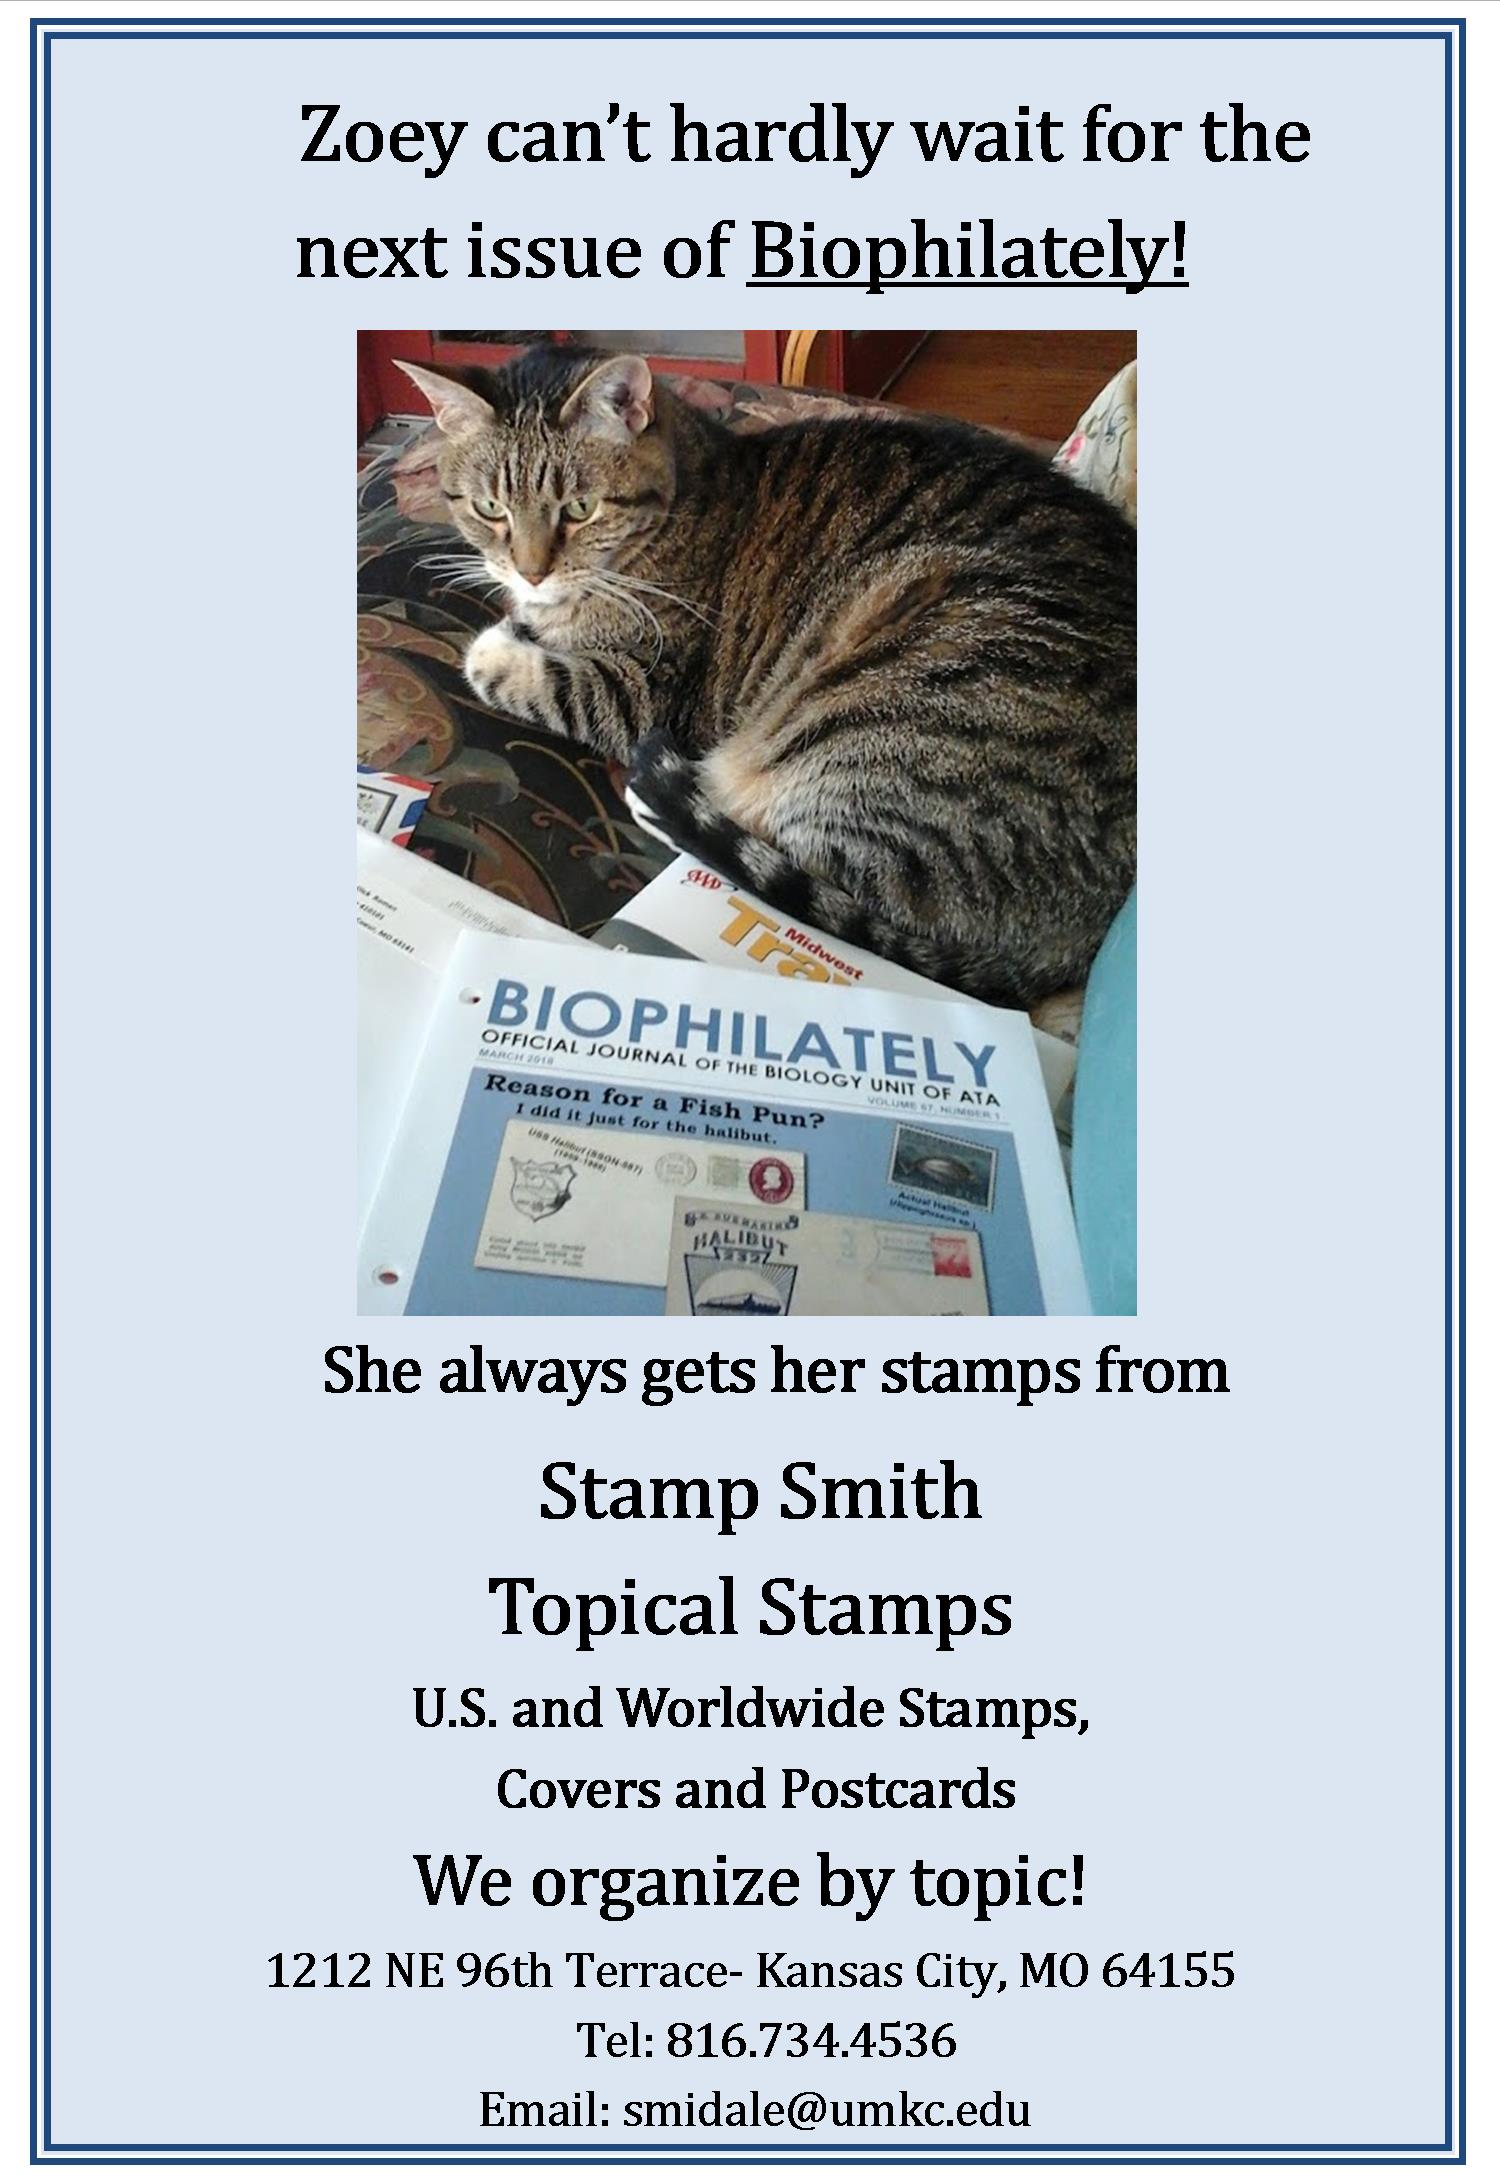 StampSmith ad